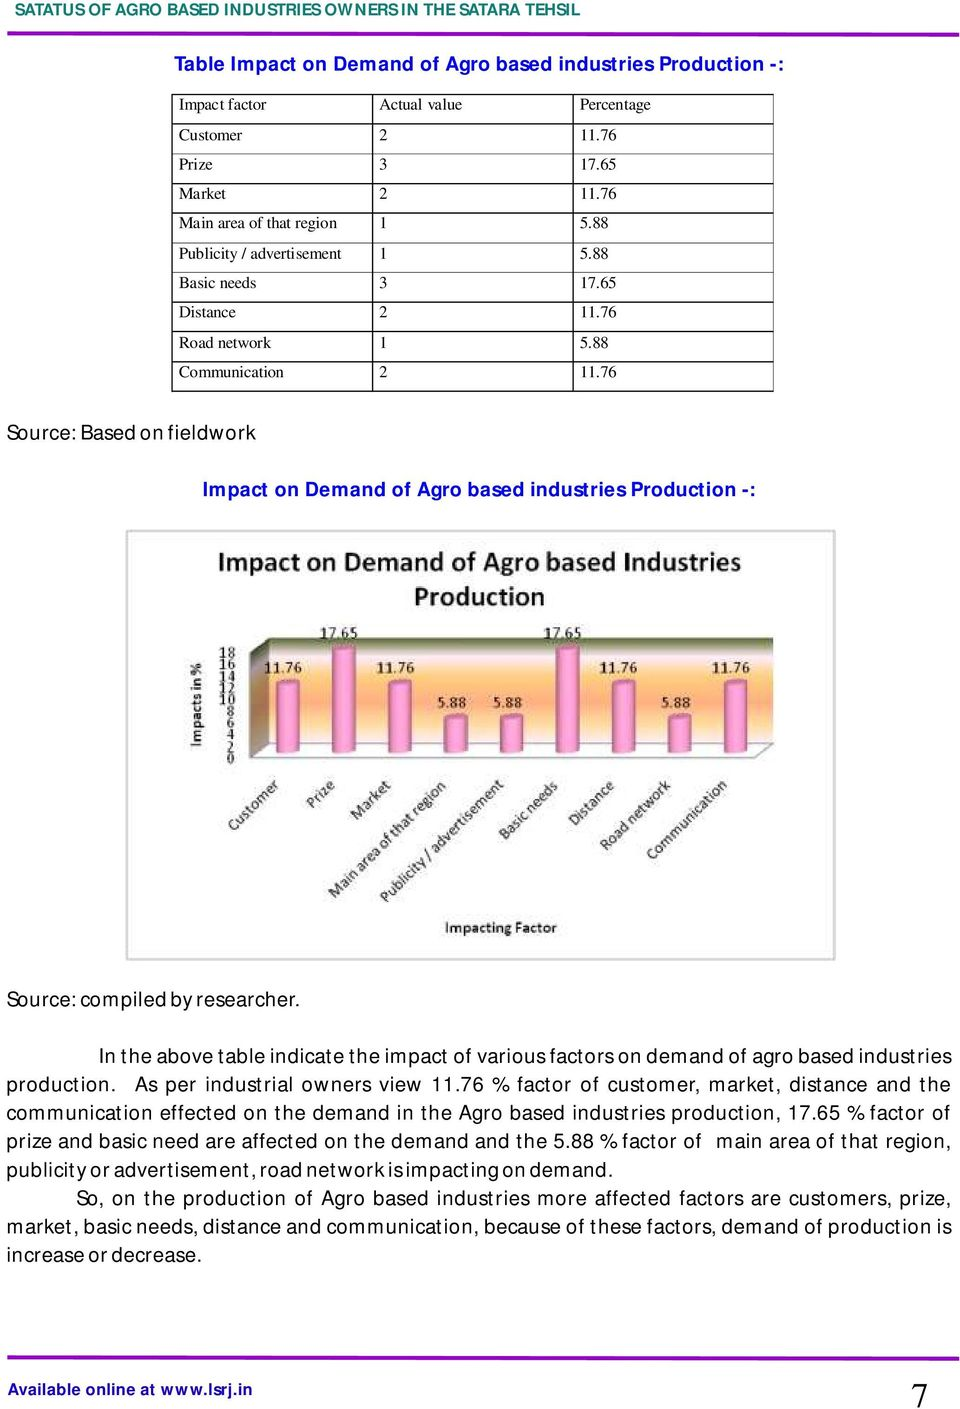 76 Source: Based on fieldwork Impact on Demand of Agro based industries Production -: Source: compiled by researcher.